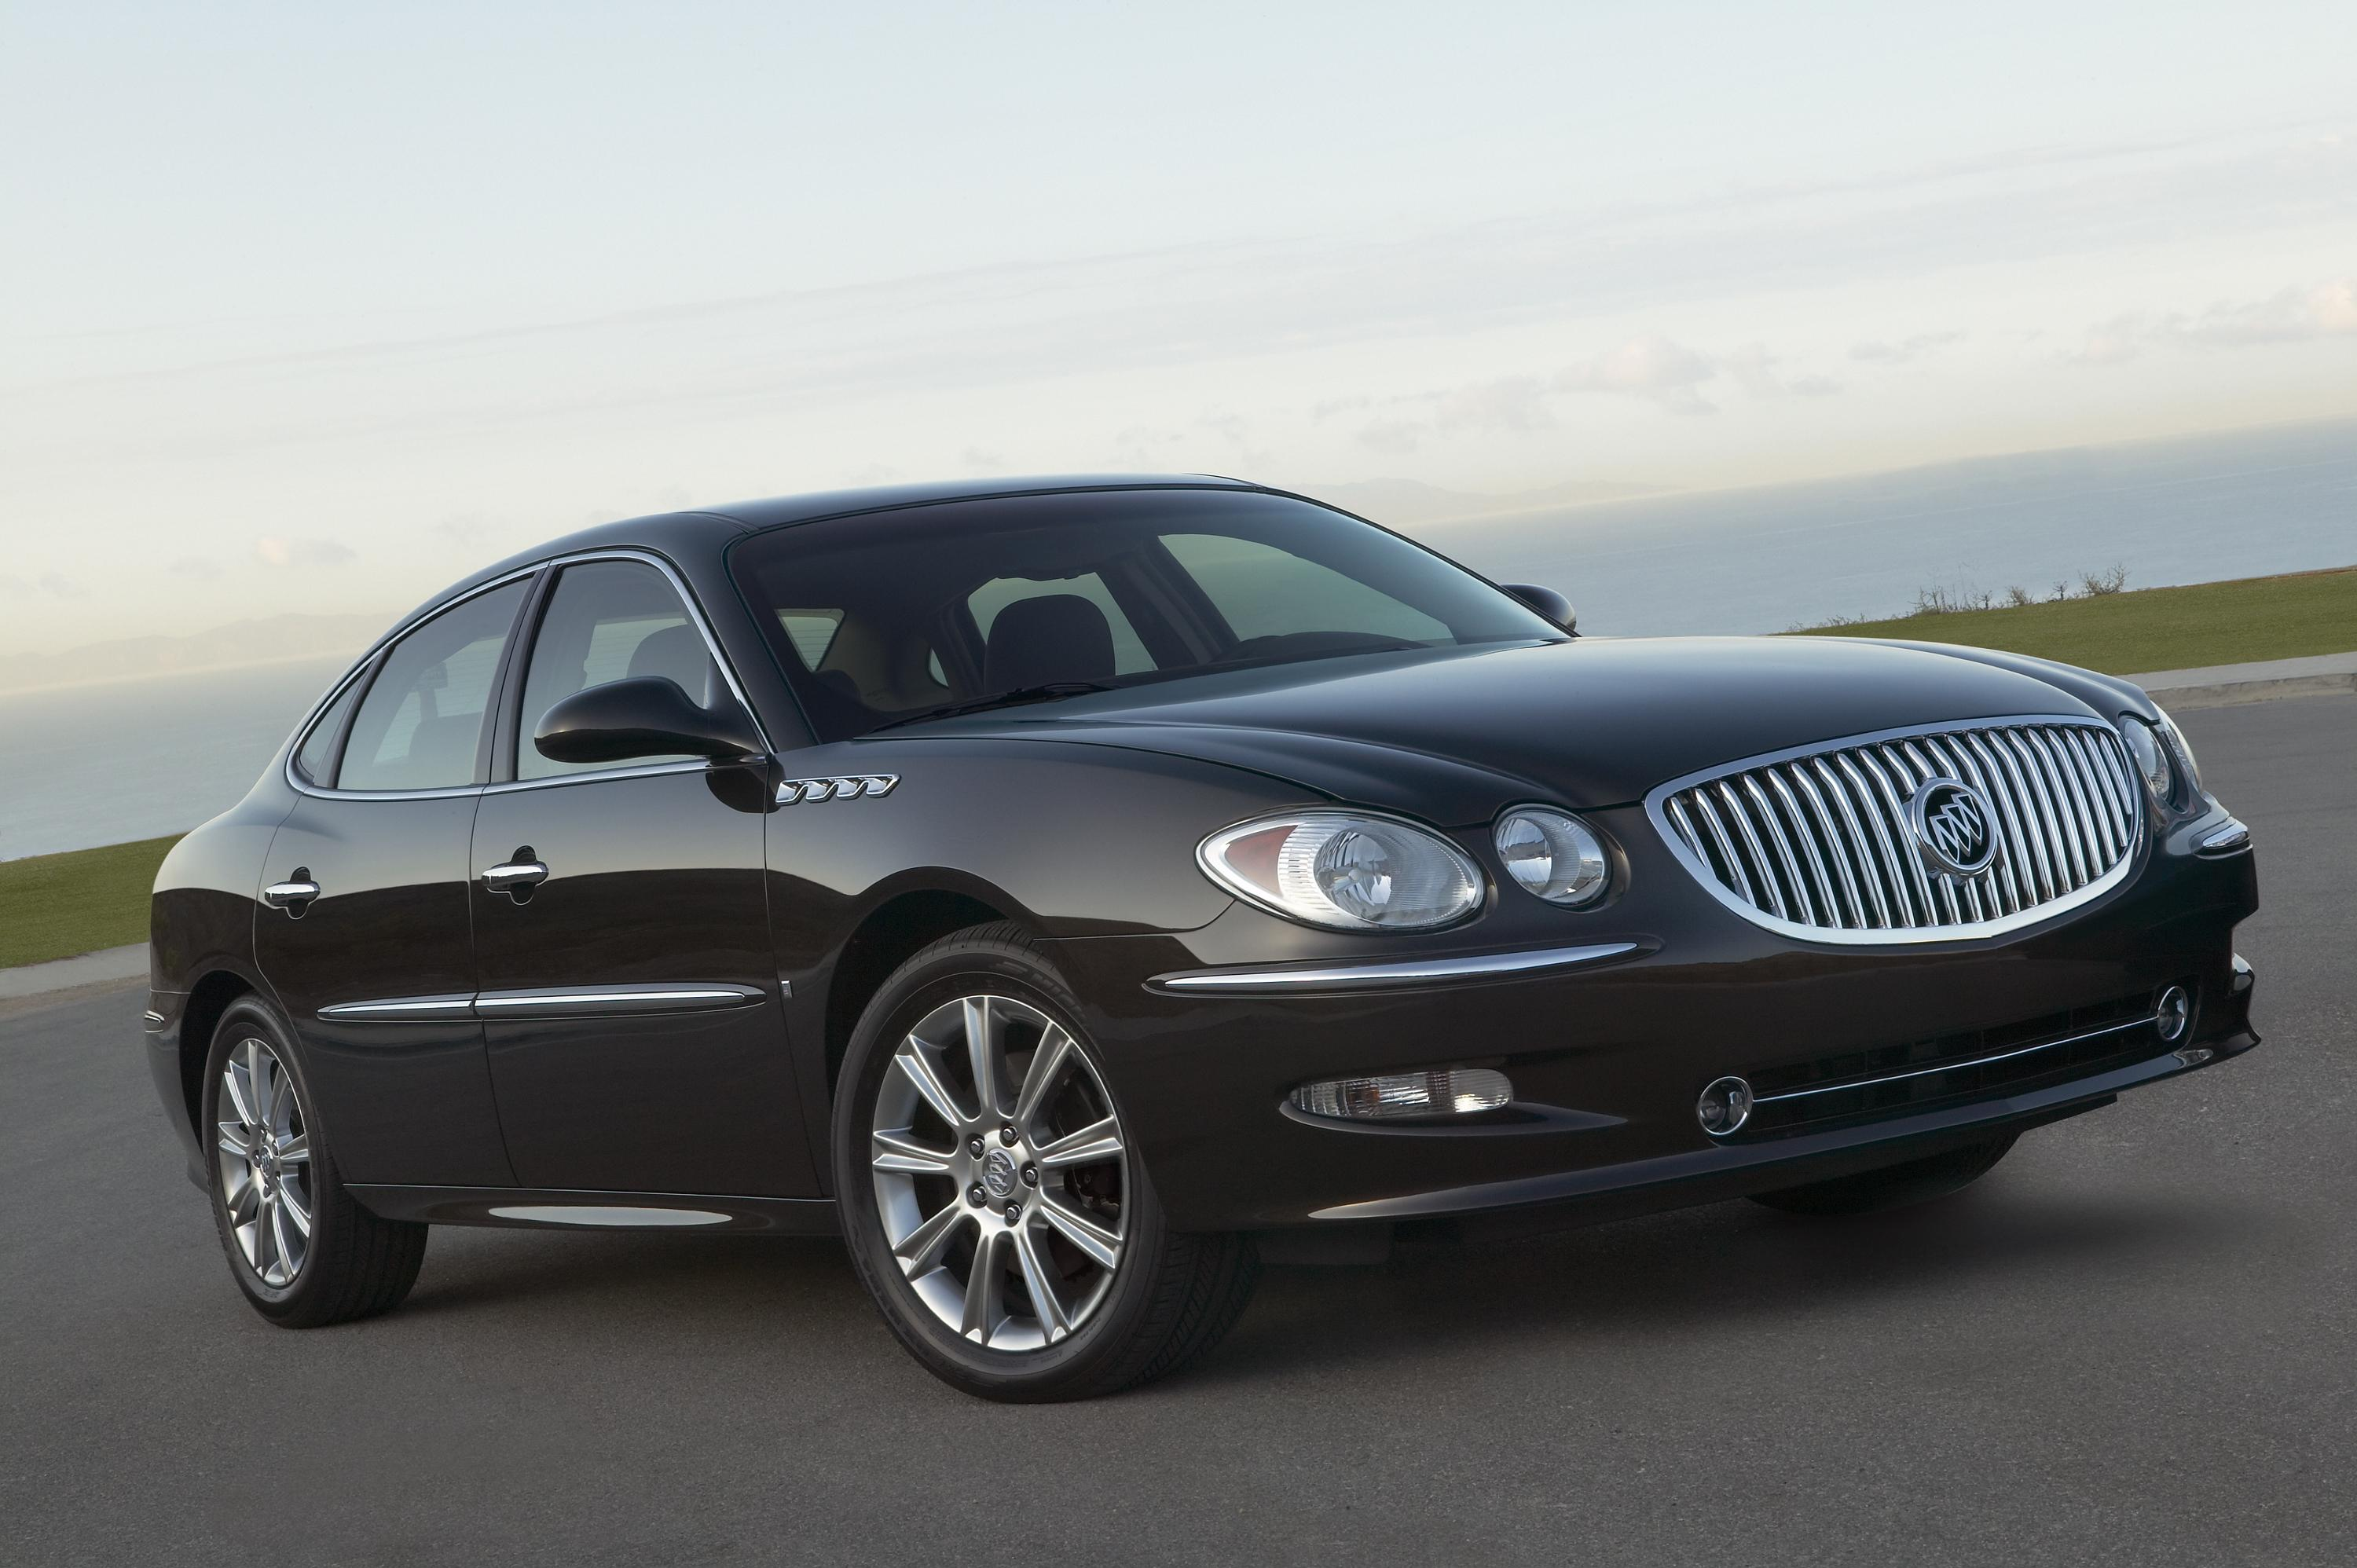 2007 Buick Lucerne Black >> 2008 Buick LaCrosse Super | Top Speed